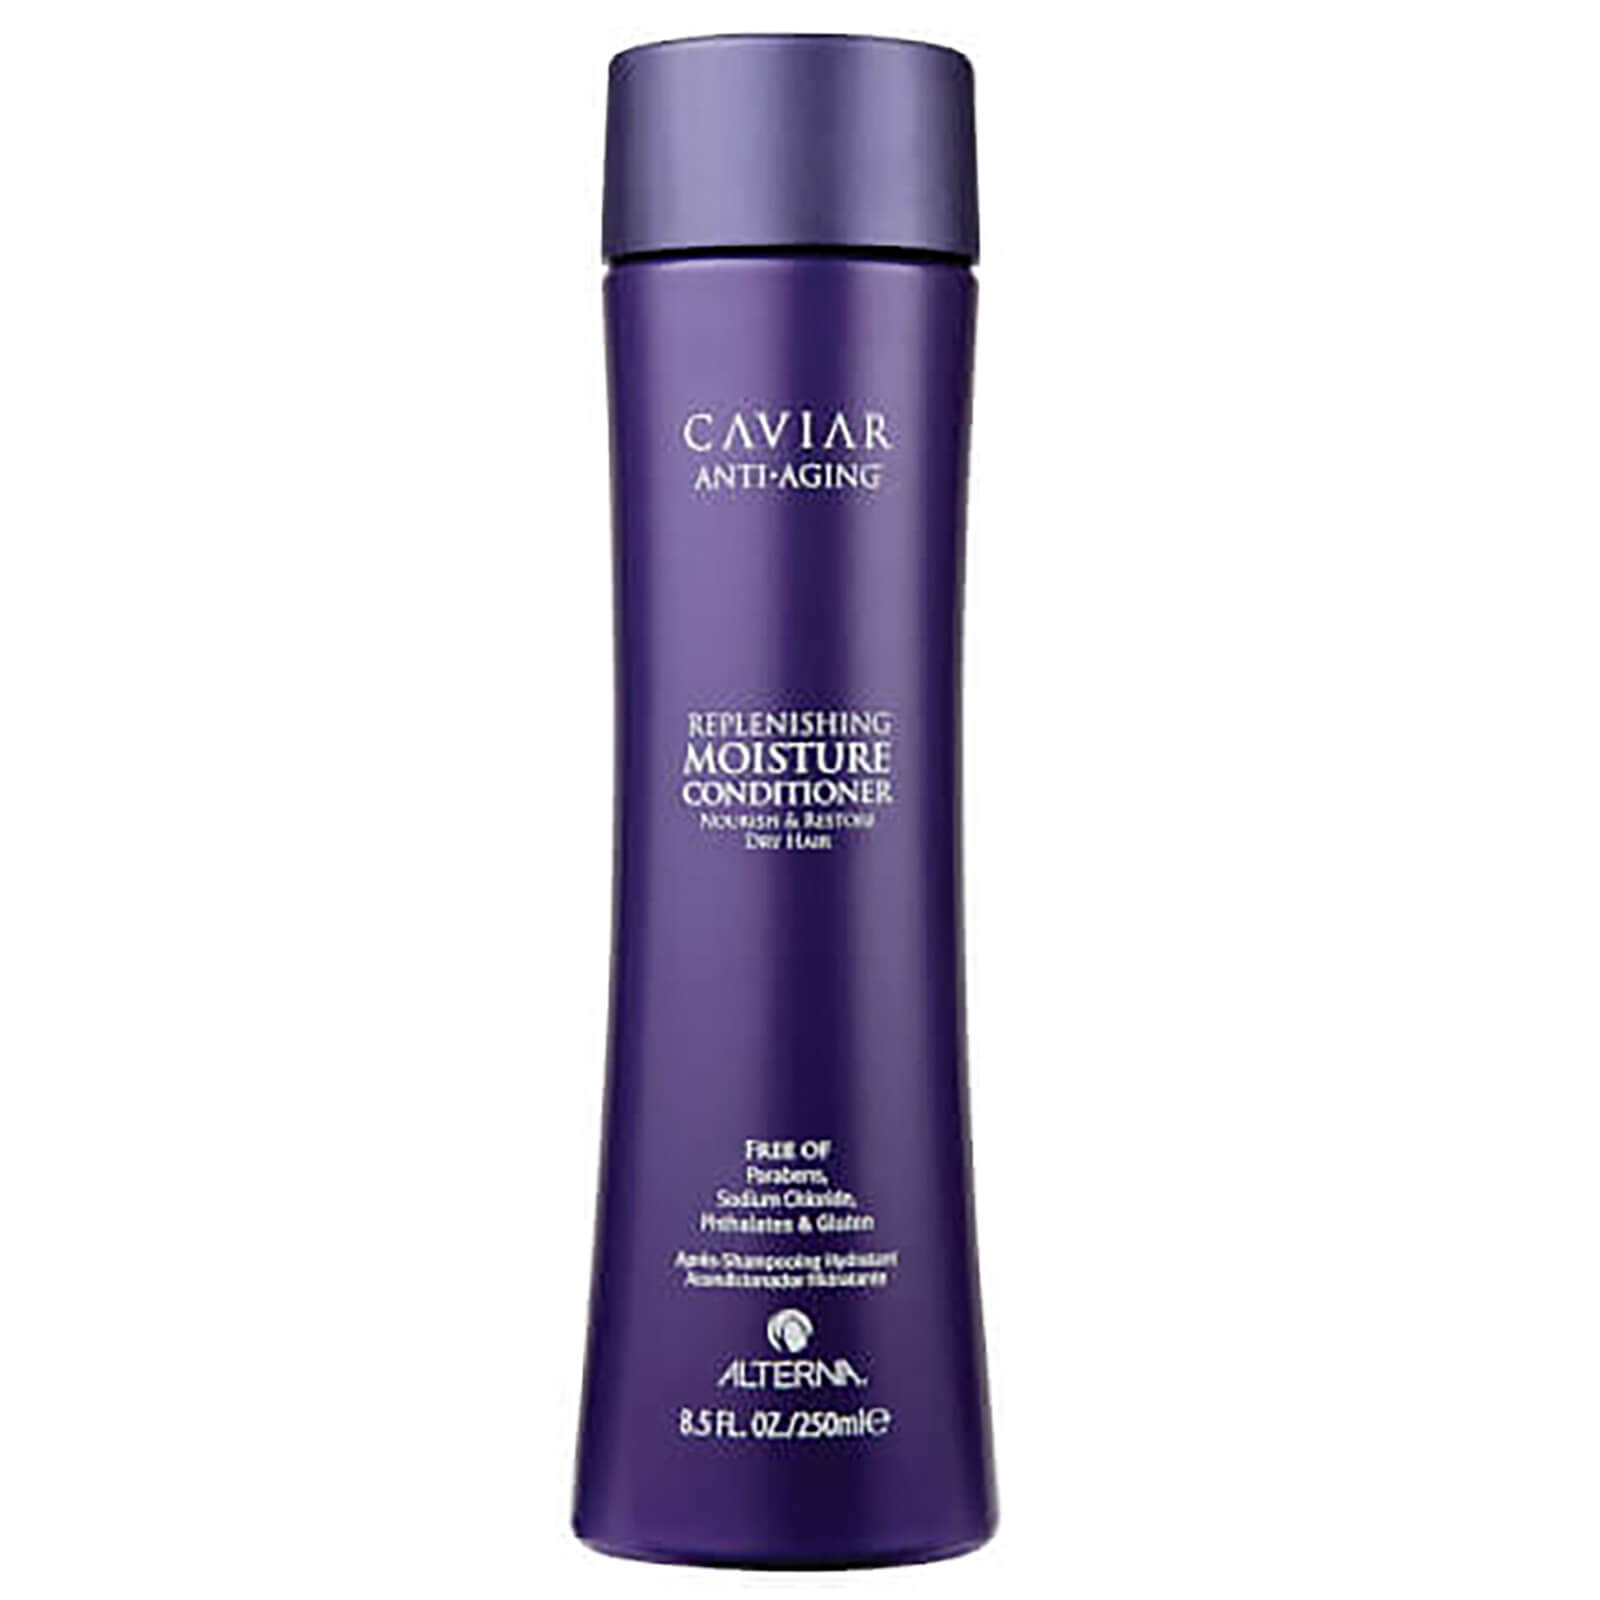 ALTERNA Anti-Aging® Replenishing Moisture Conditioner